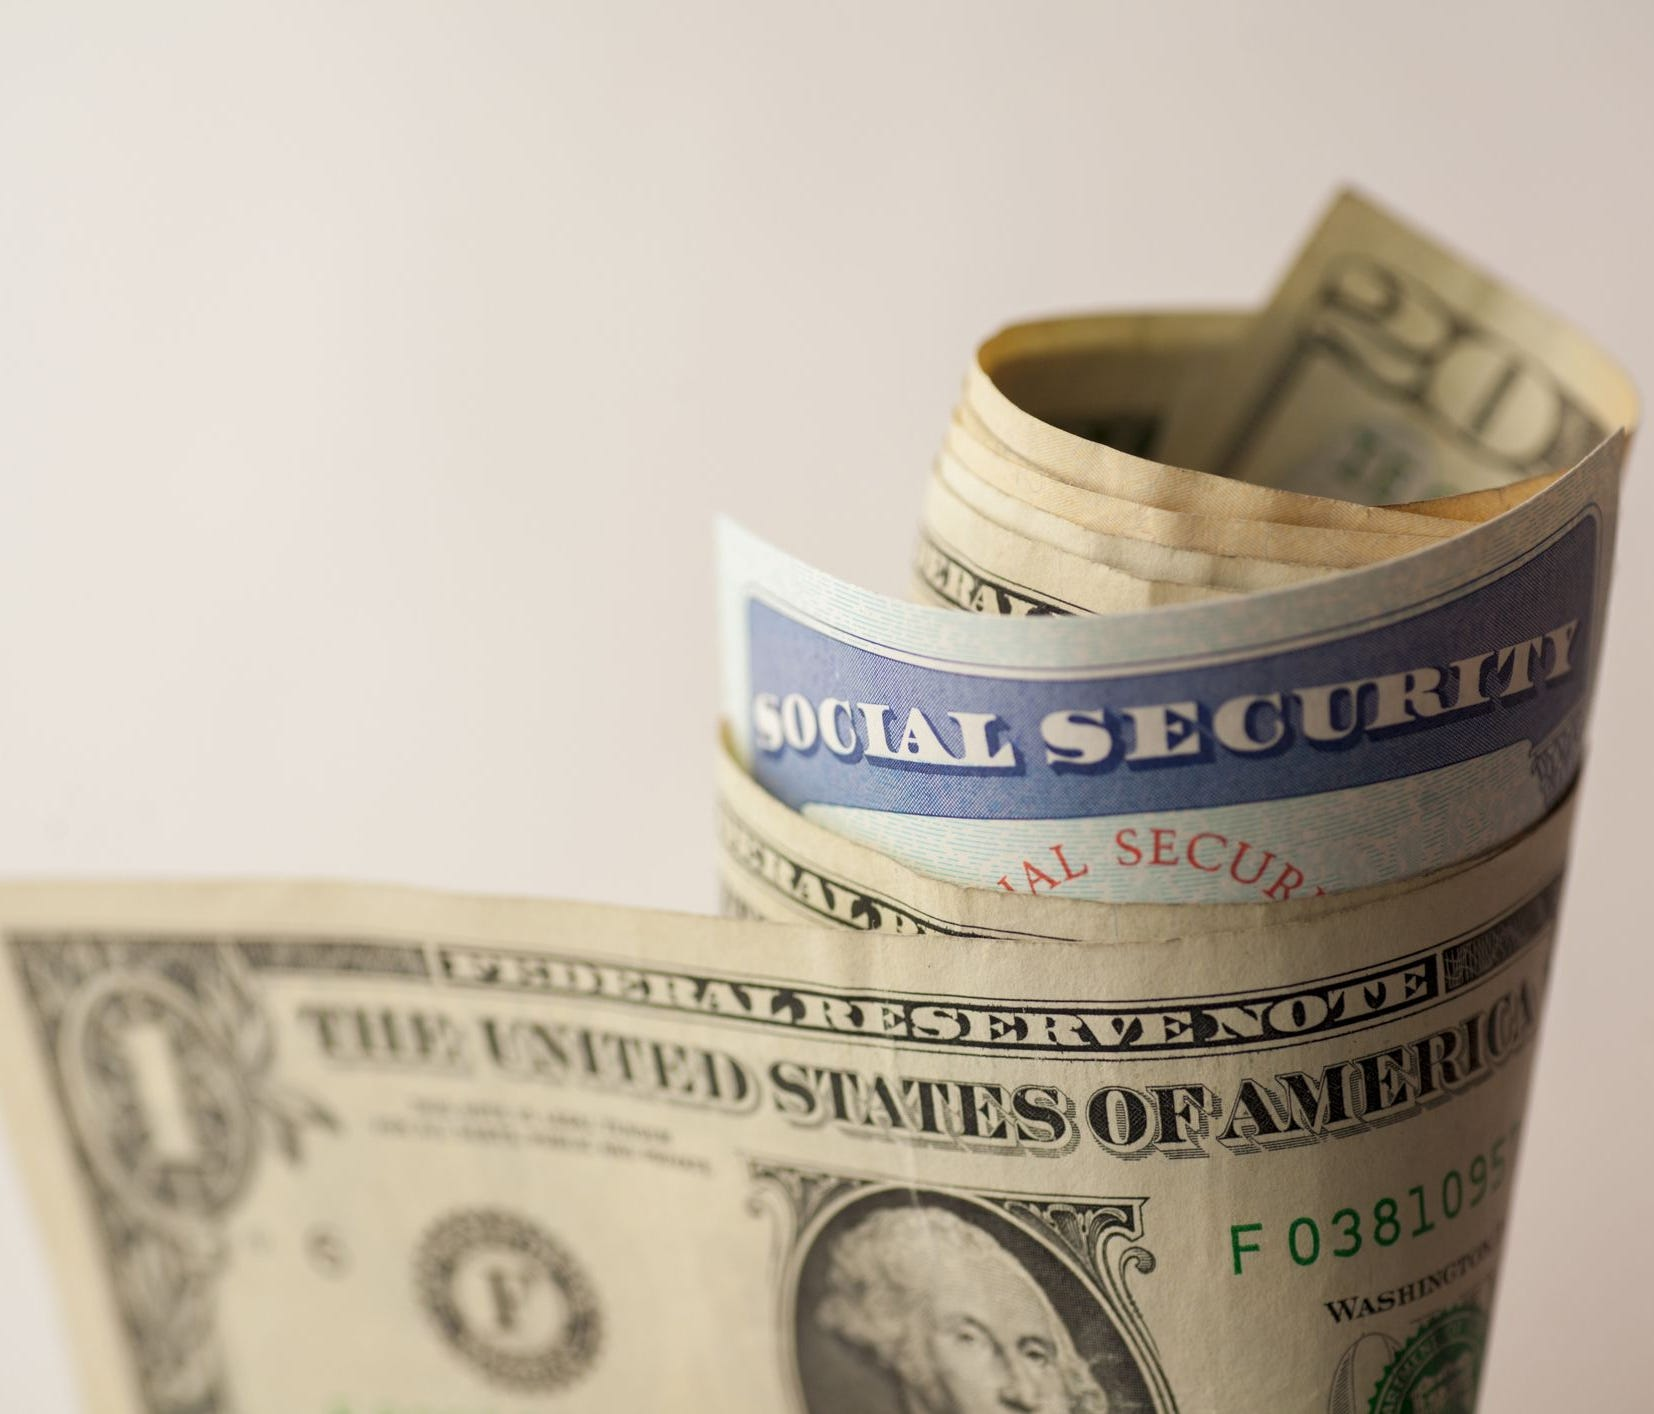 If you don't need the money and you are relatively healthy, the longer you wait to take Social Security benefits the better.